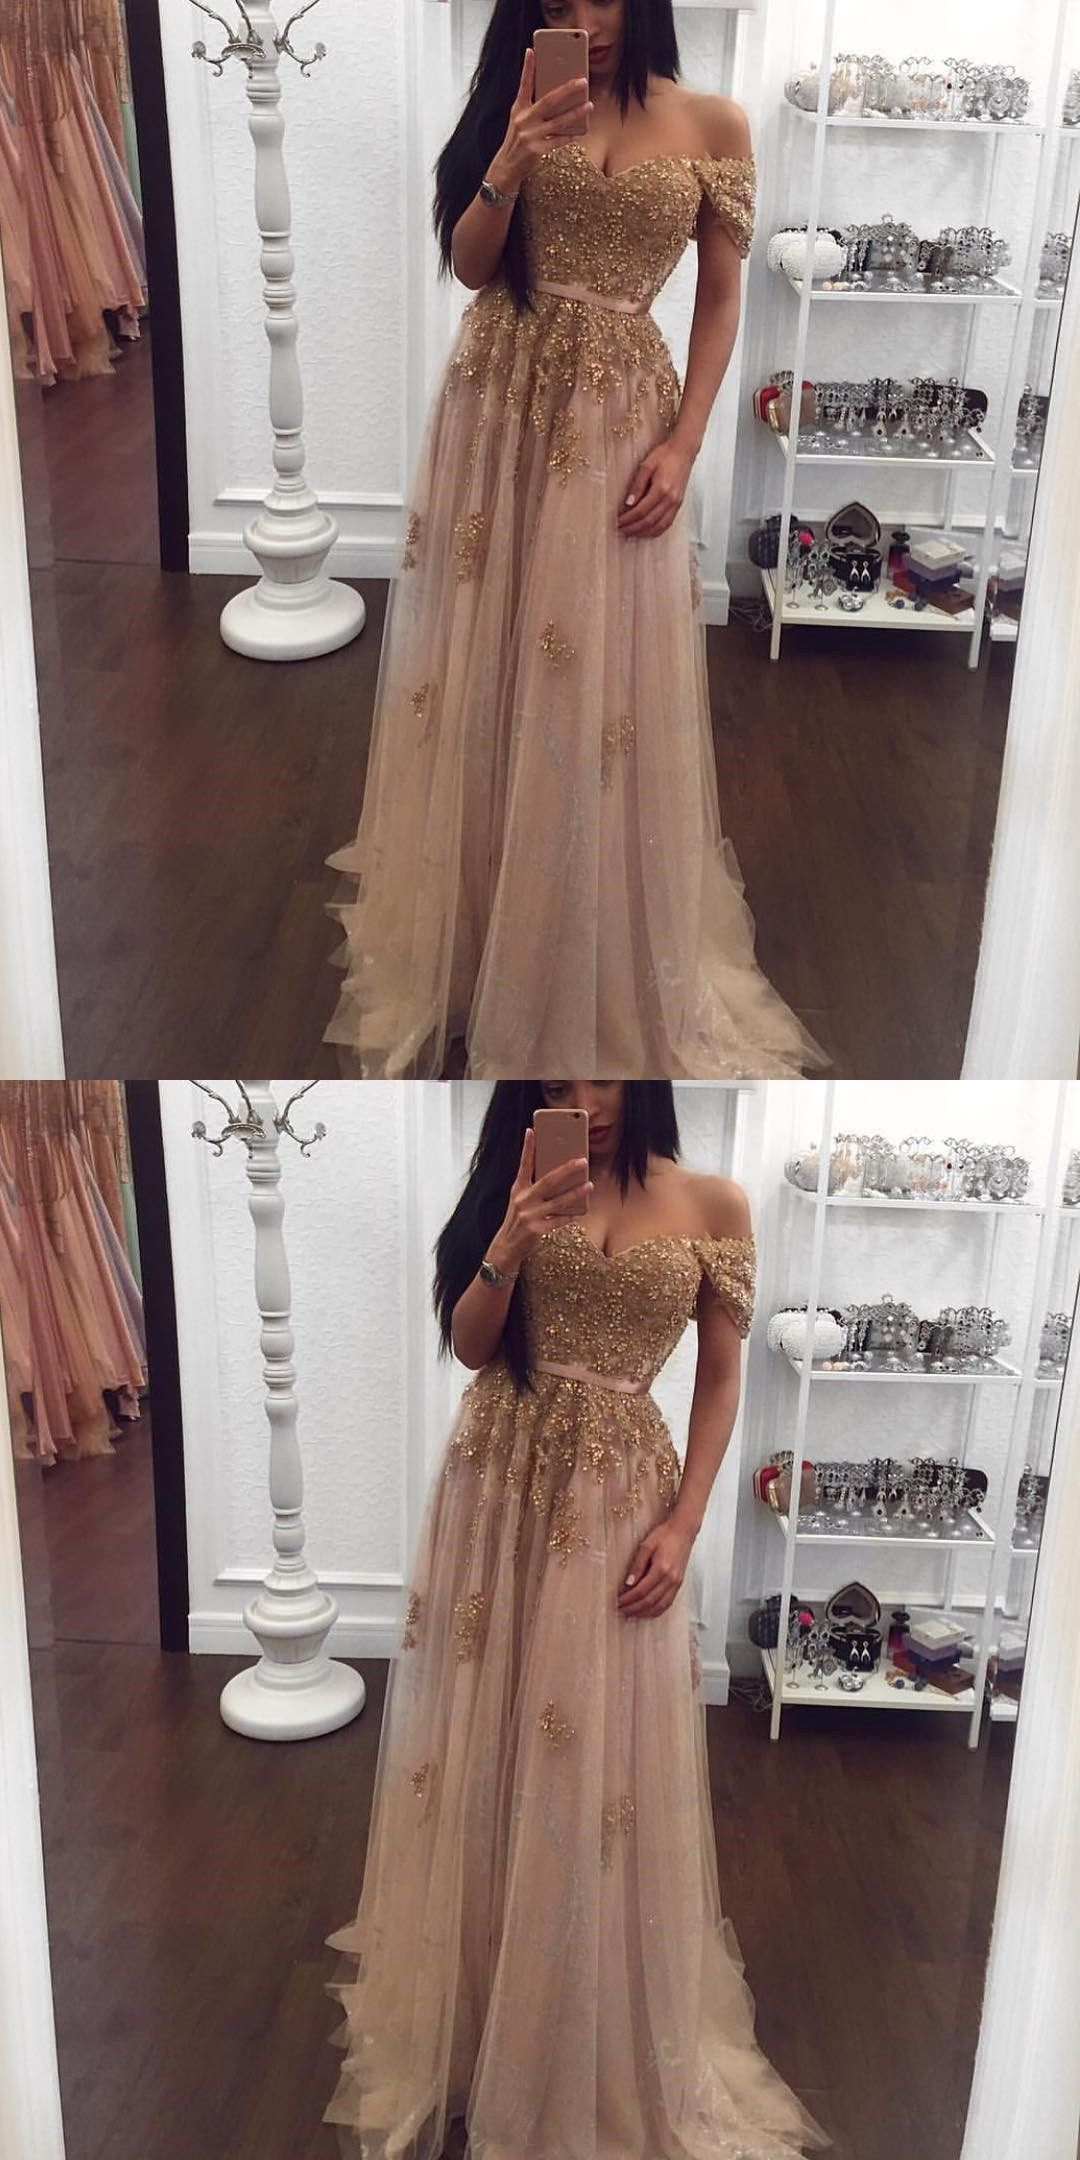 Champagne color prom dresses sexy beading prom gown prom dress with